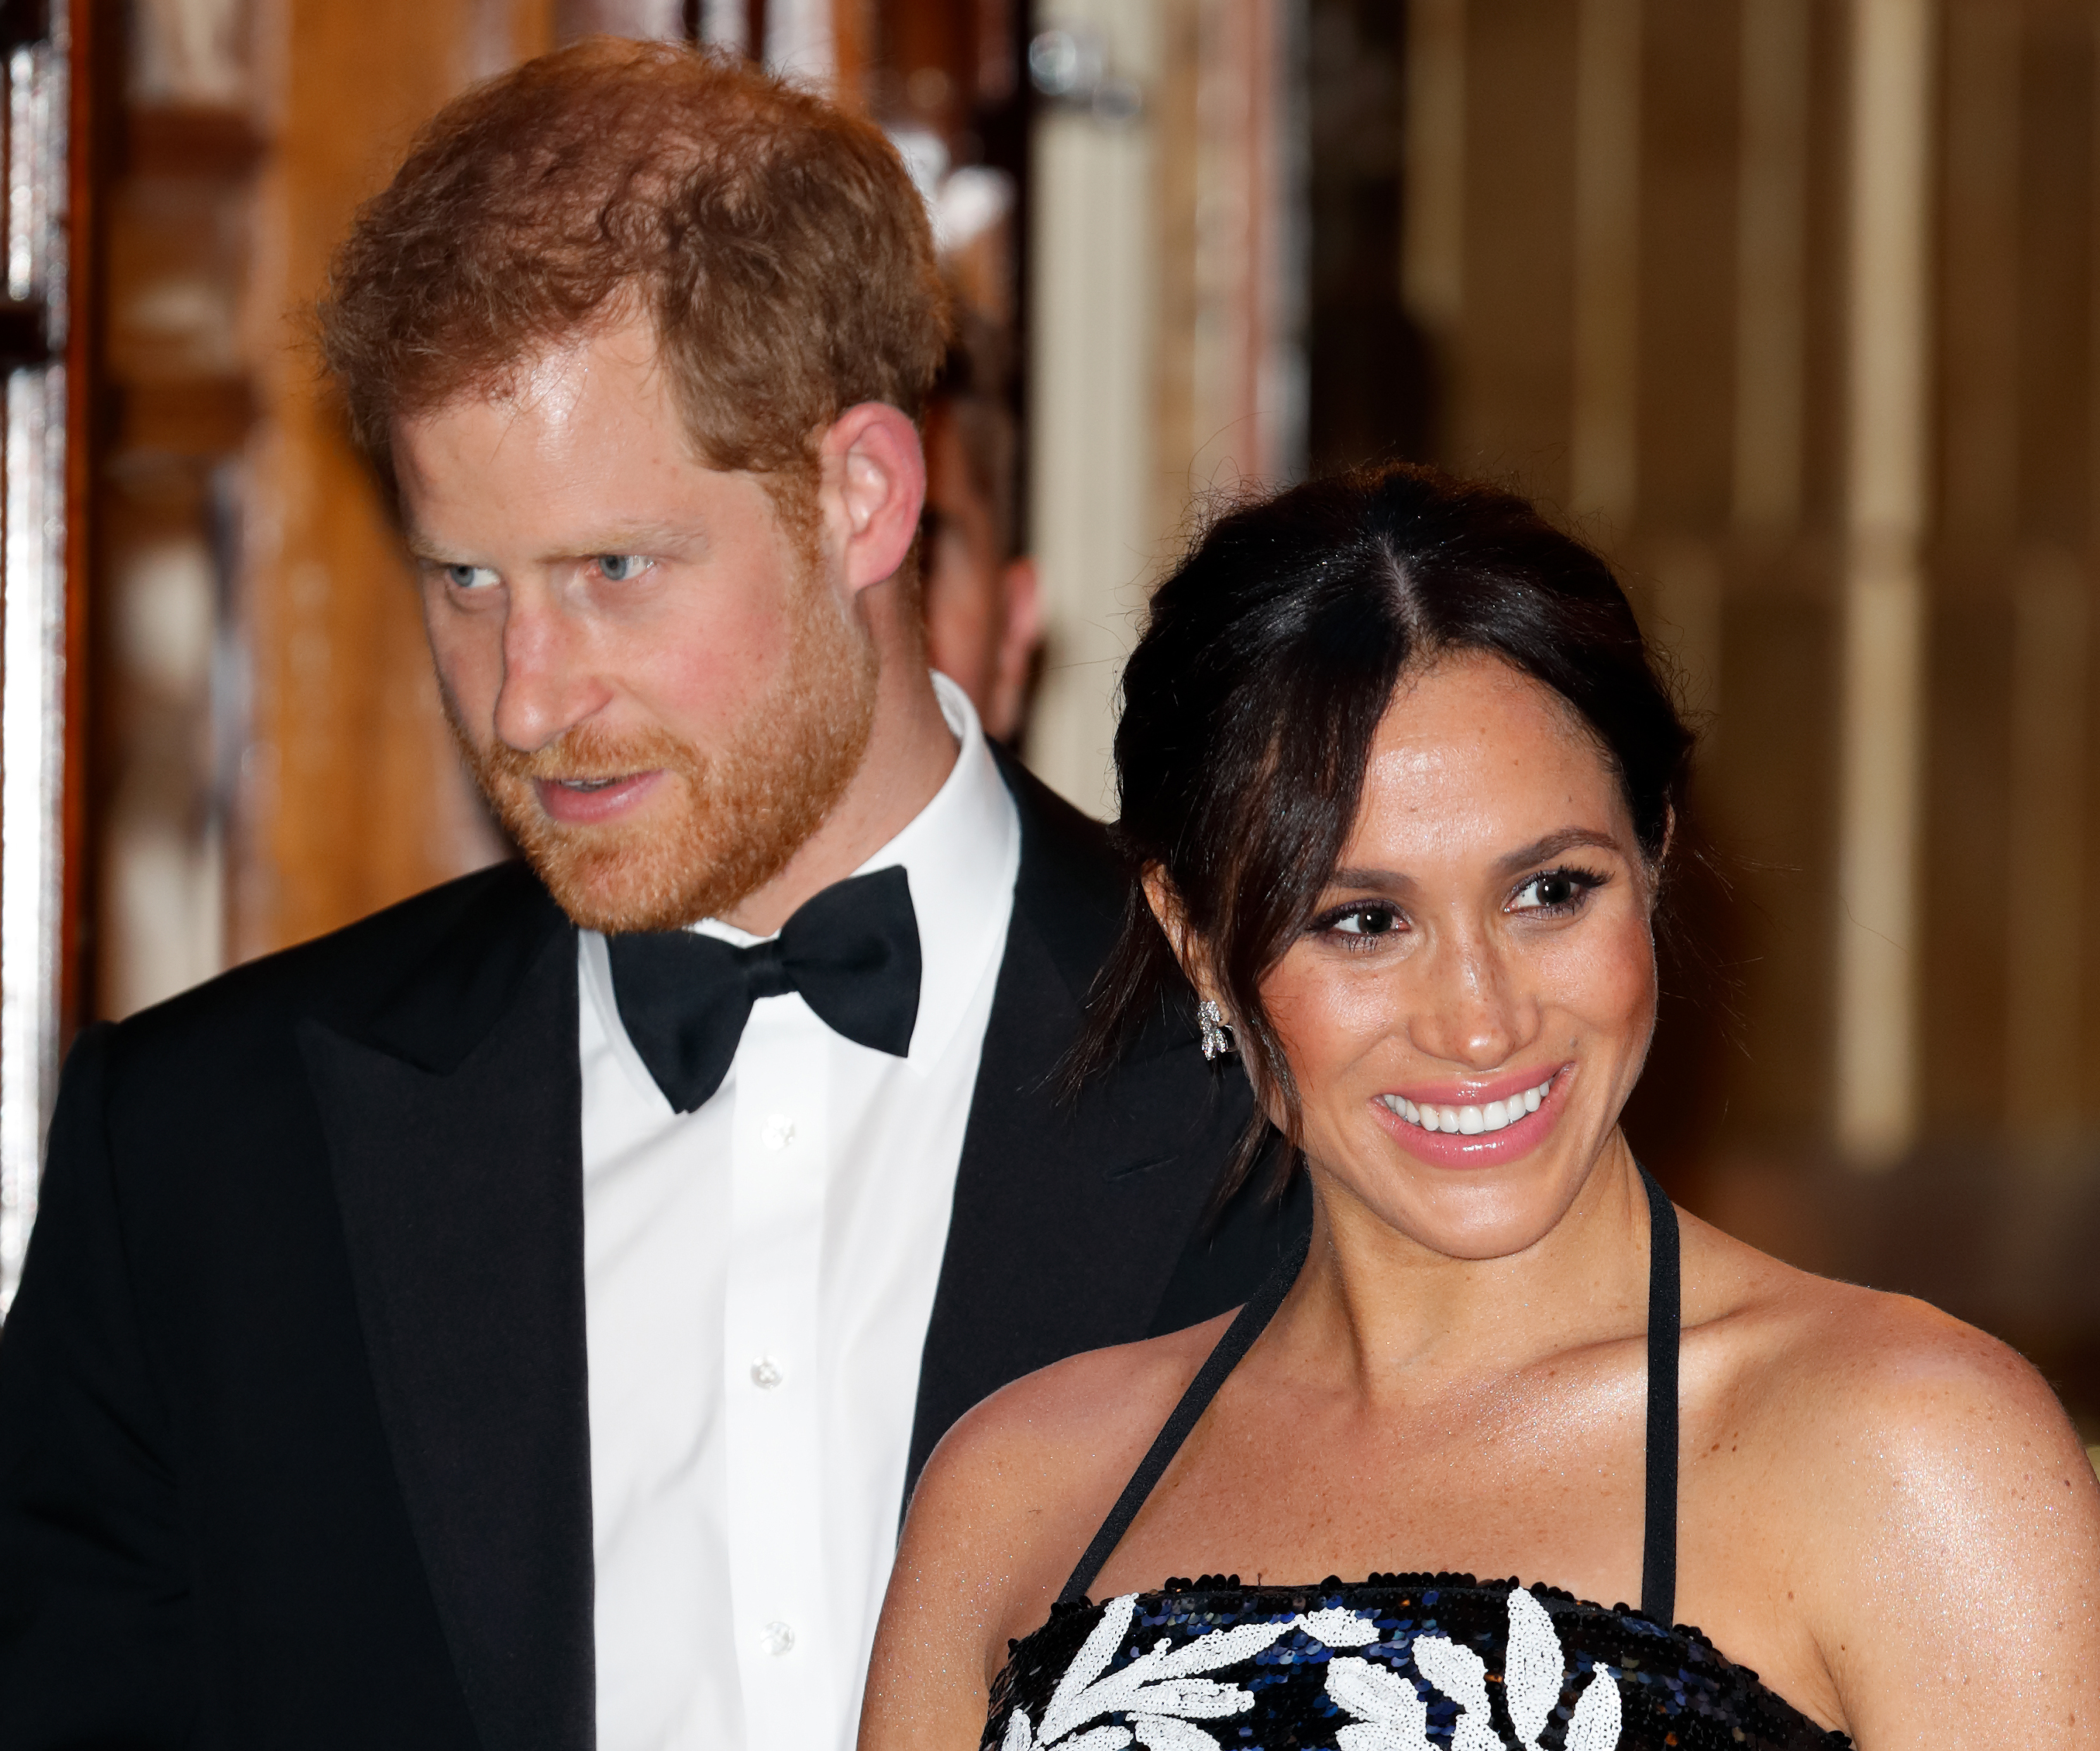 Meghan Markle said to be causing a 'rift' in the royal family